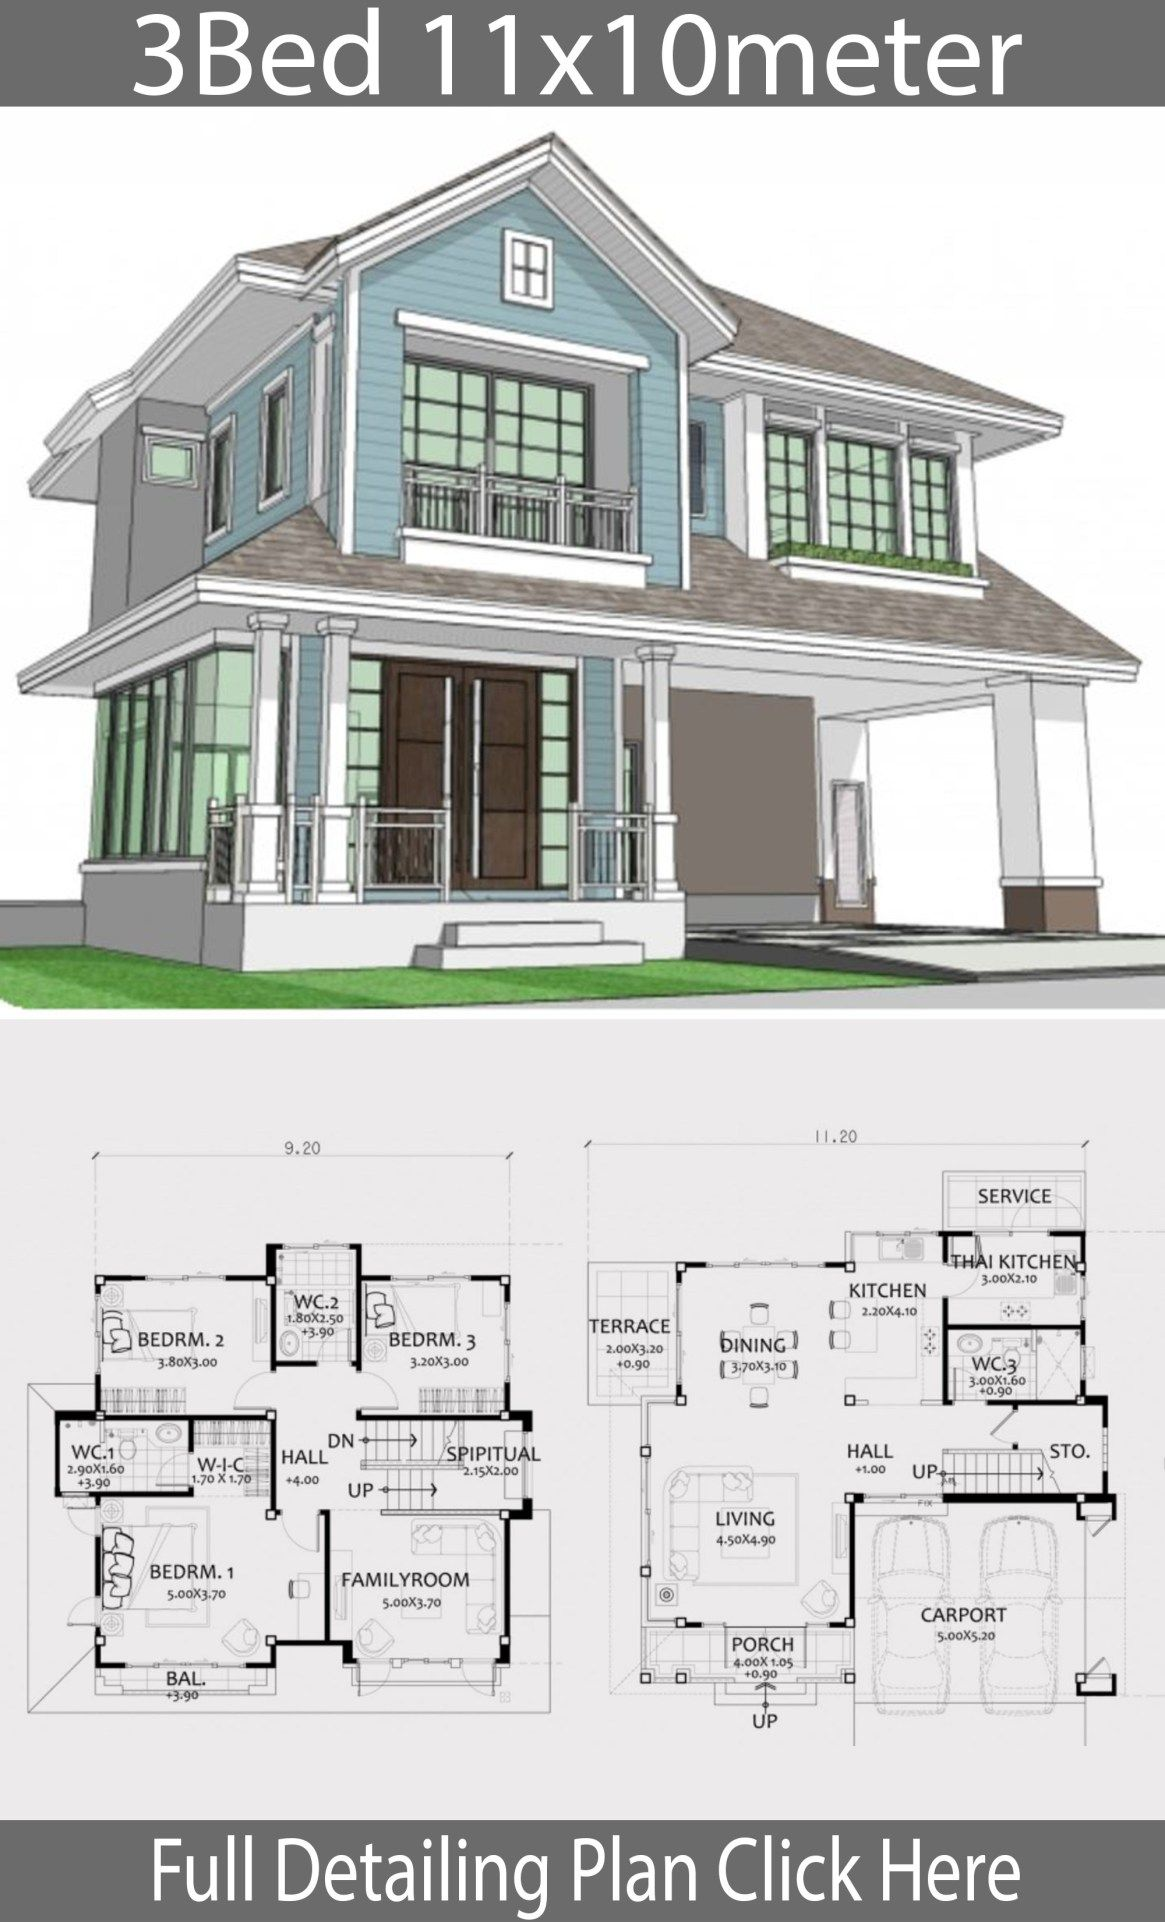 Home Design Plan 11x10meters With 3 Bedrooms Home Design With Plansearch Home Design Plan House Architecture Design House Design